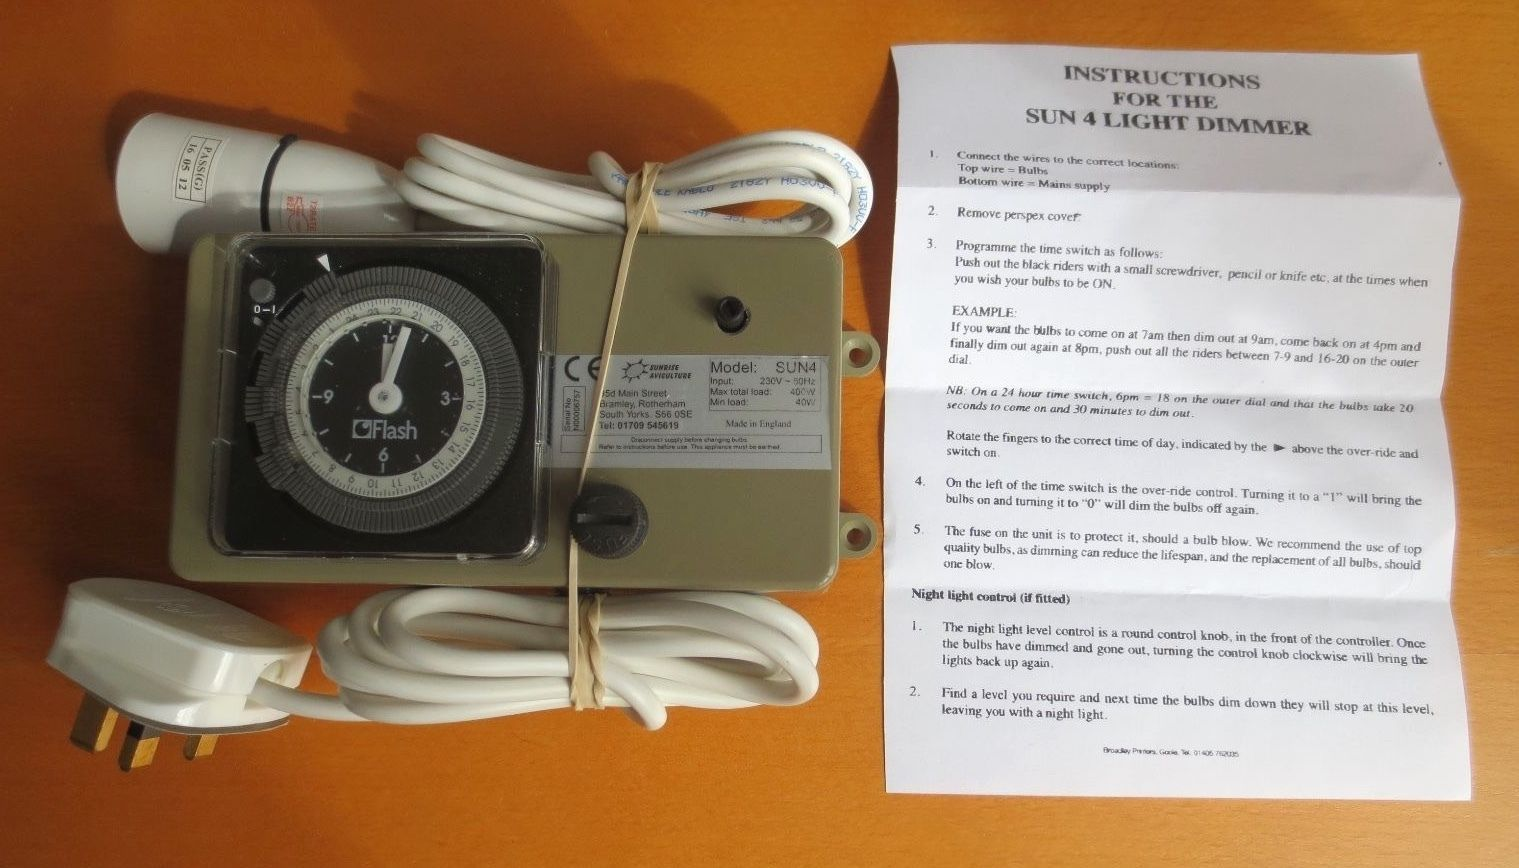 LIGHT DIMMER BIRDROOM LIGHTING DIMMER CONTROL BOX WITH NIGHT LIGHT